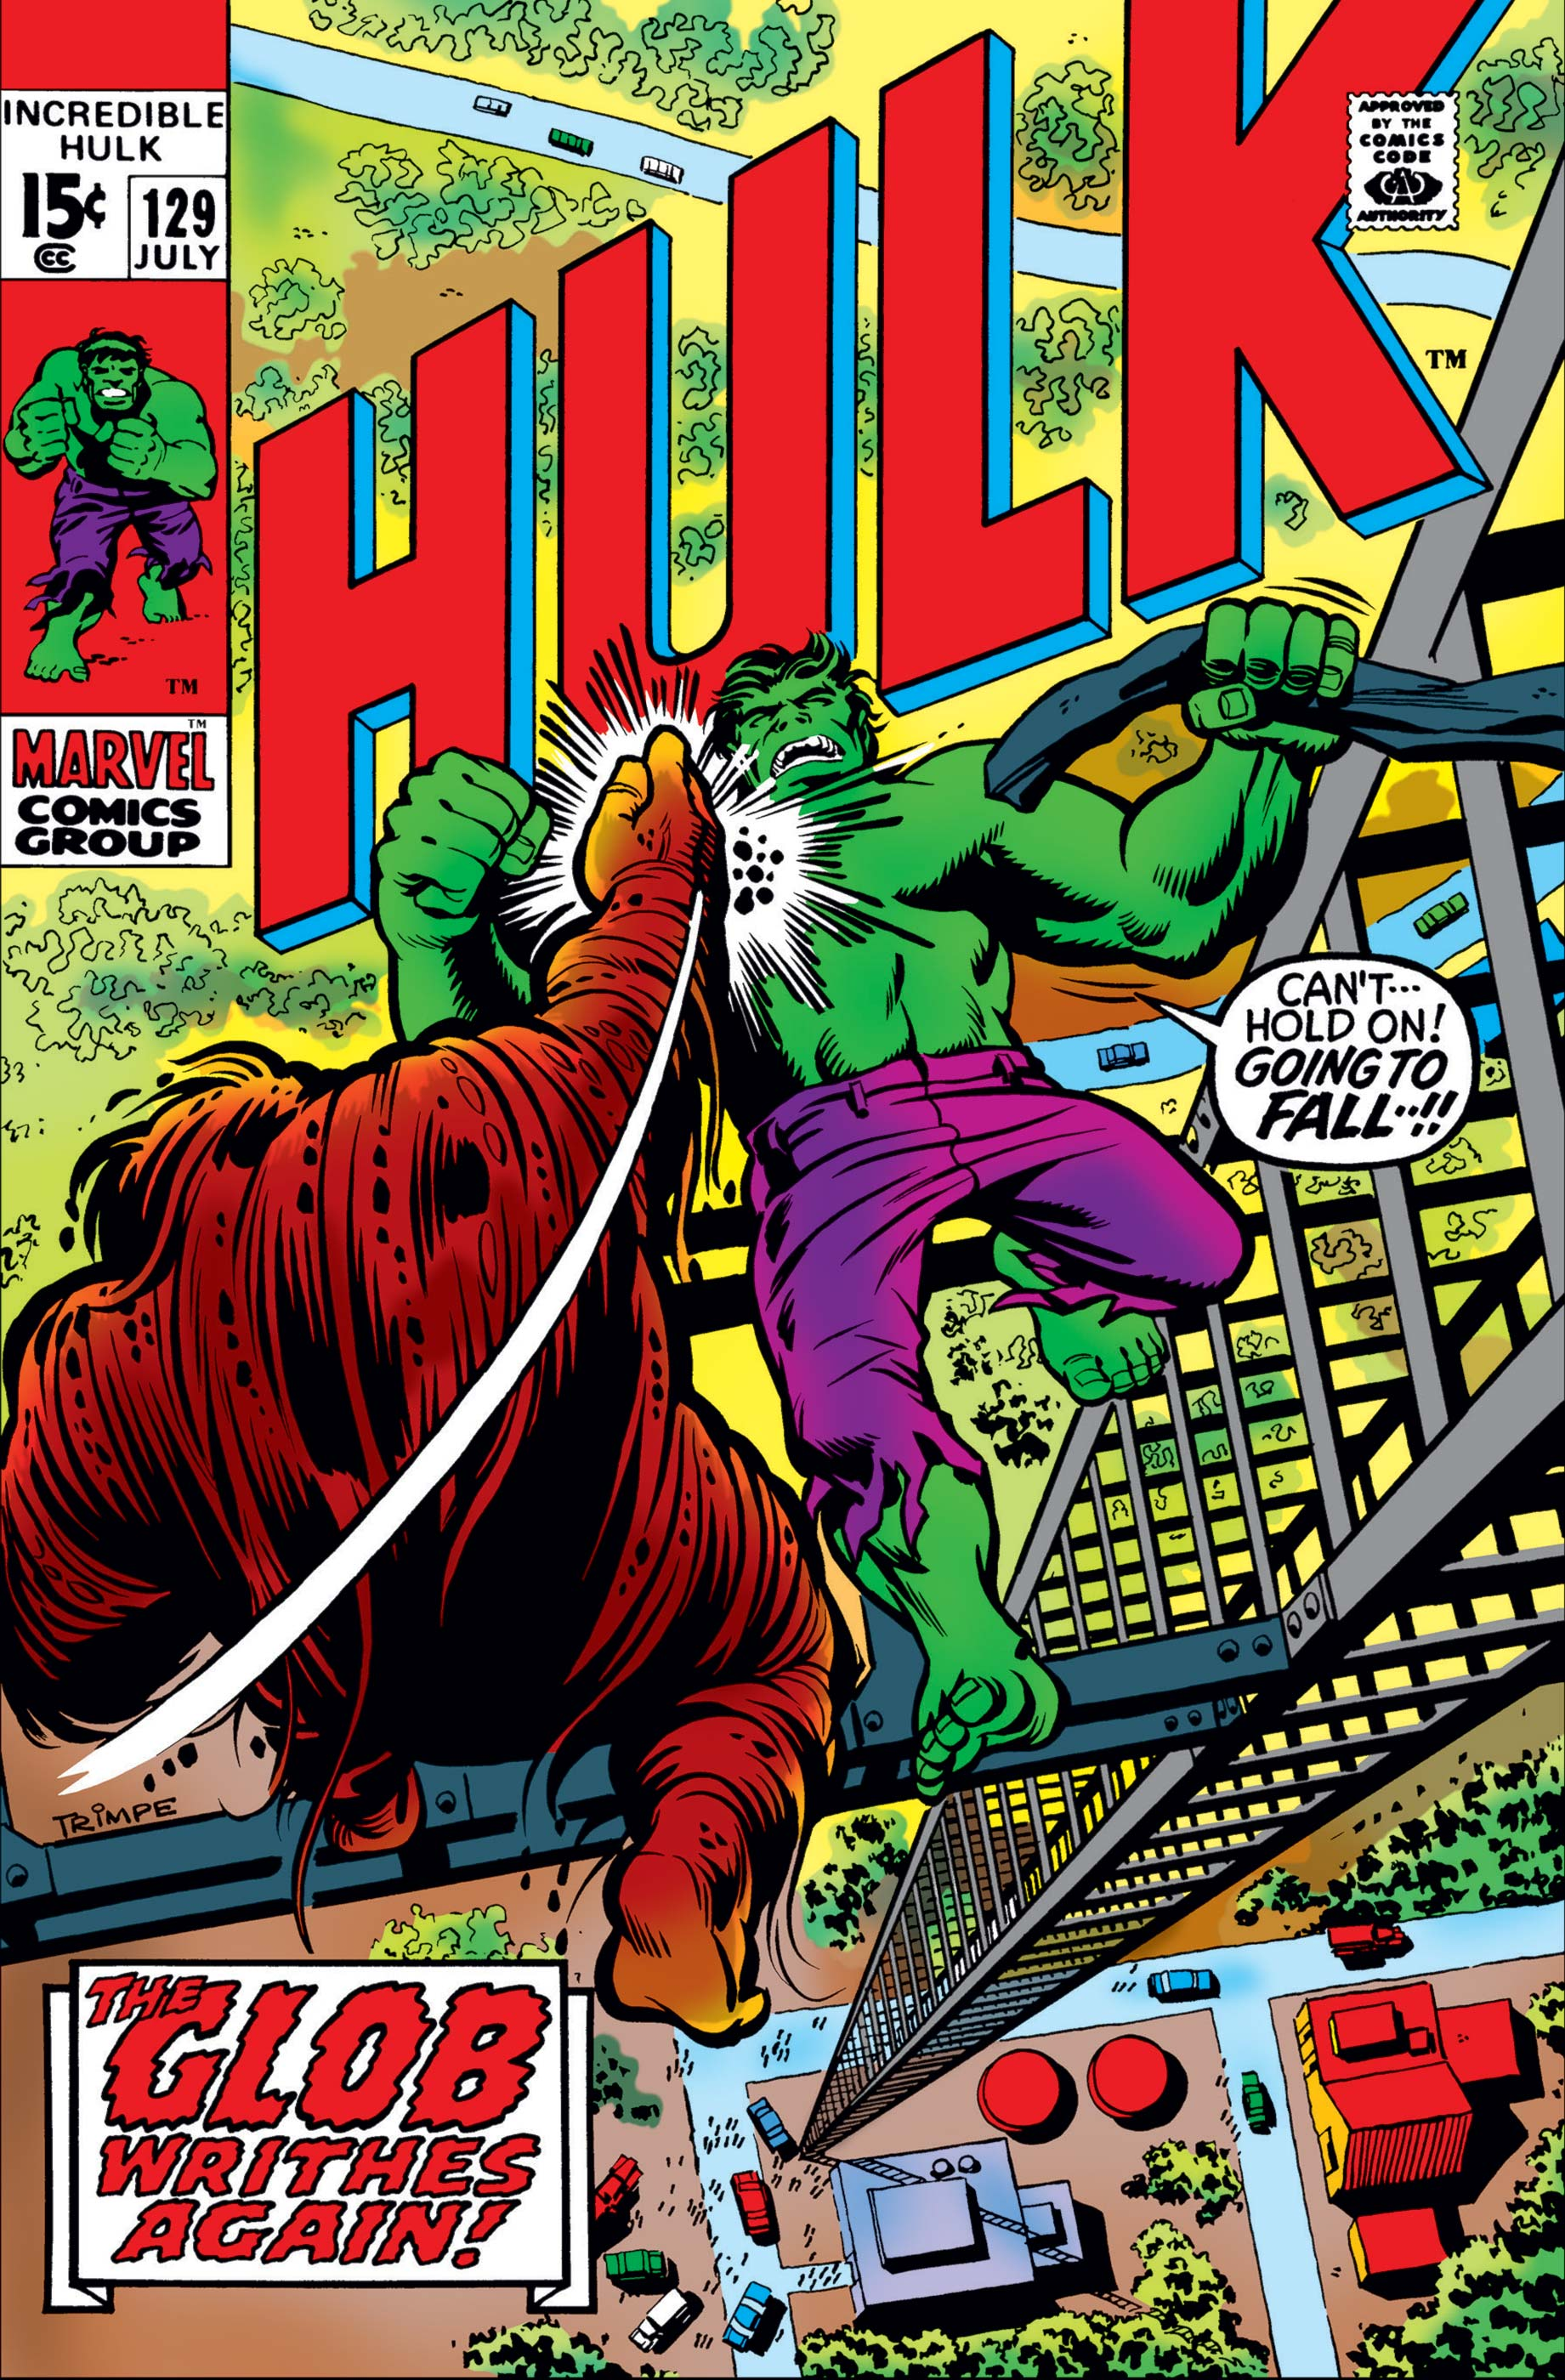 The Incredible Hulk 129 - Again, The Glob!